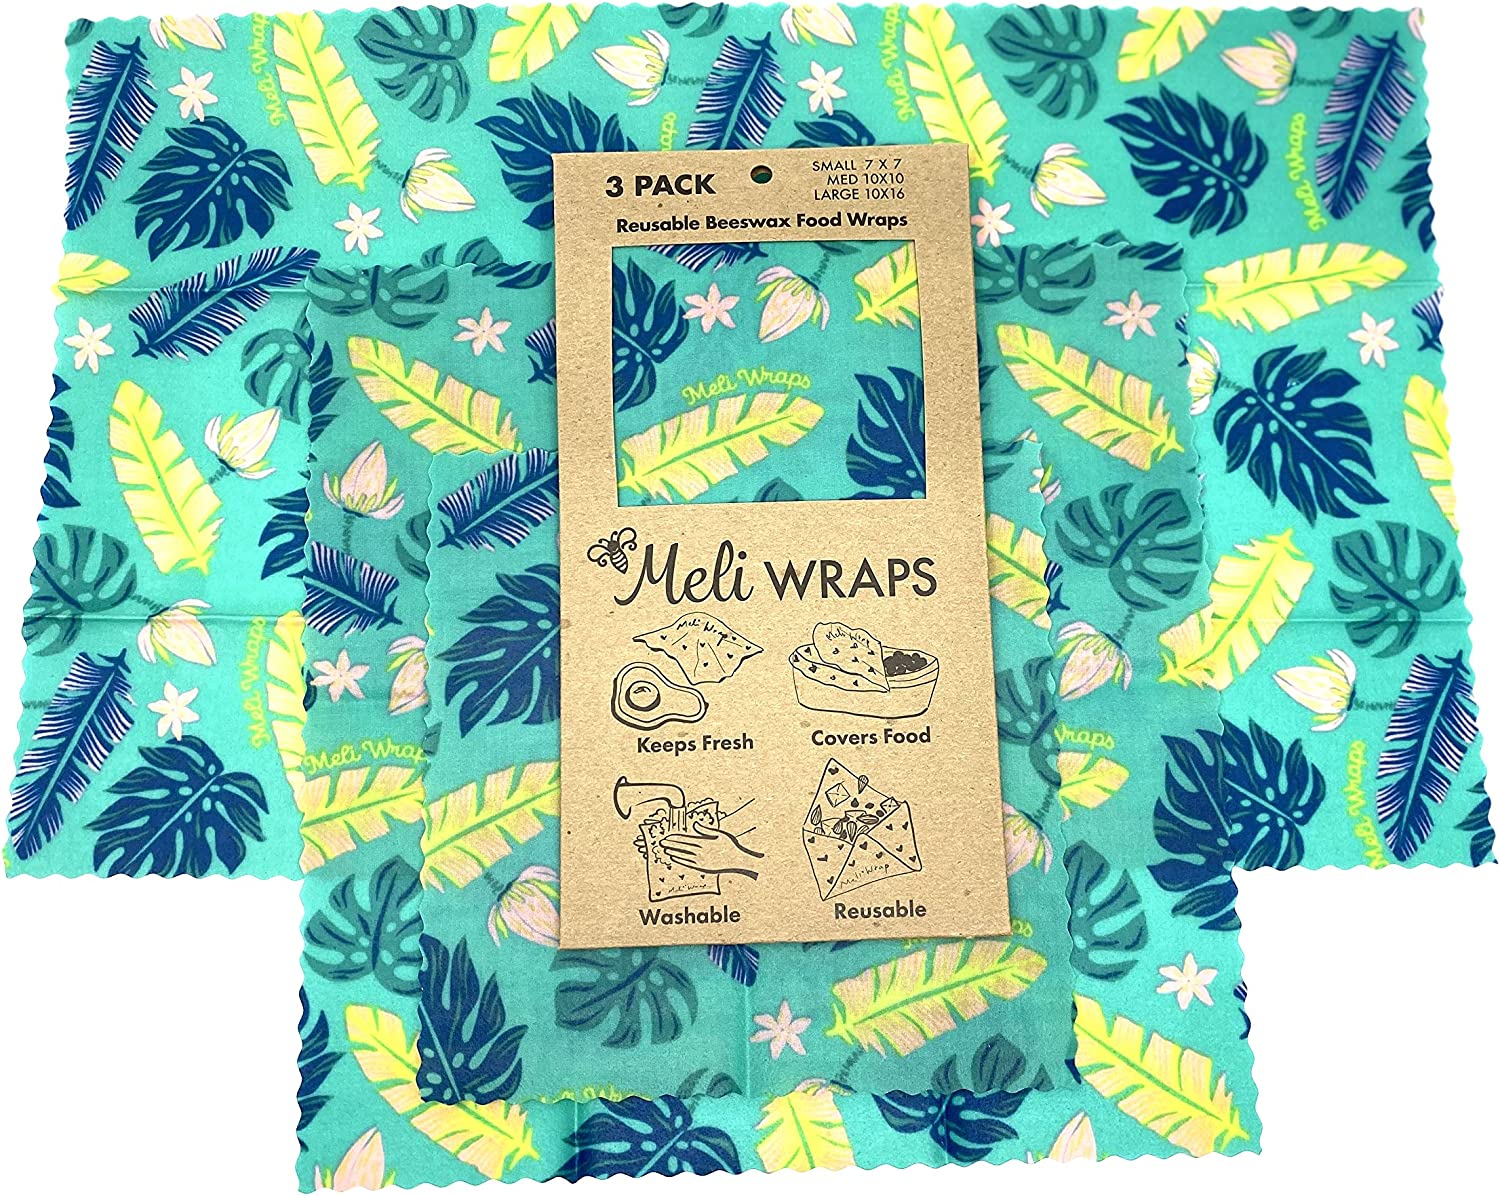 Meli Wraps Beeswax Wraps - Reusable Food Wrap Alternative to Plastic Wrap. Certified Organic Cotton, Made with Hawaiian Beeswax. 3-Pack includes sizes (SML) in Beautiful Original Prints